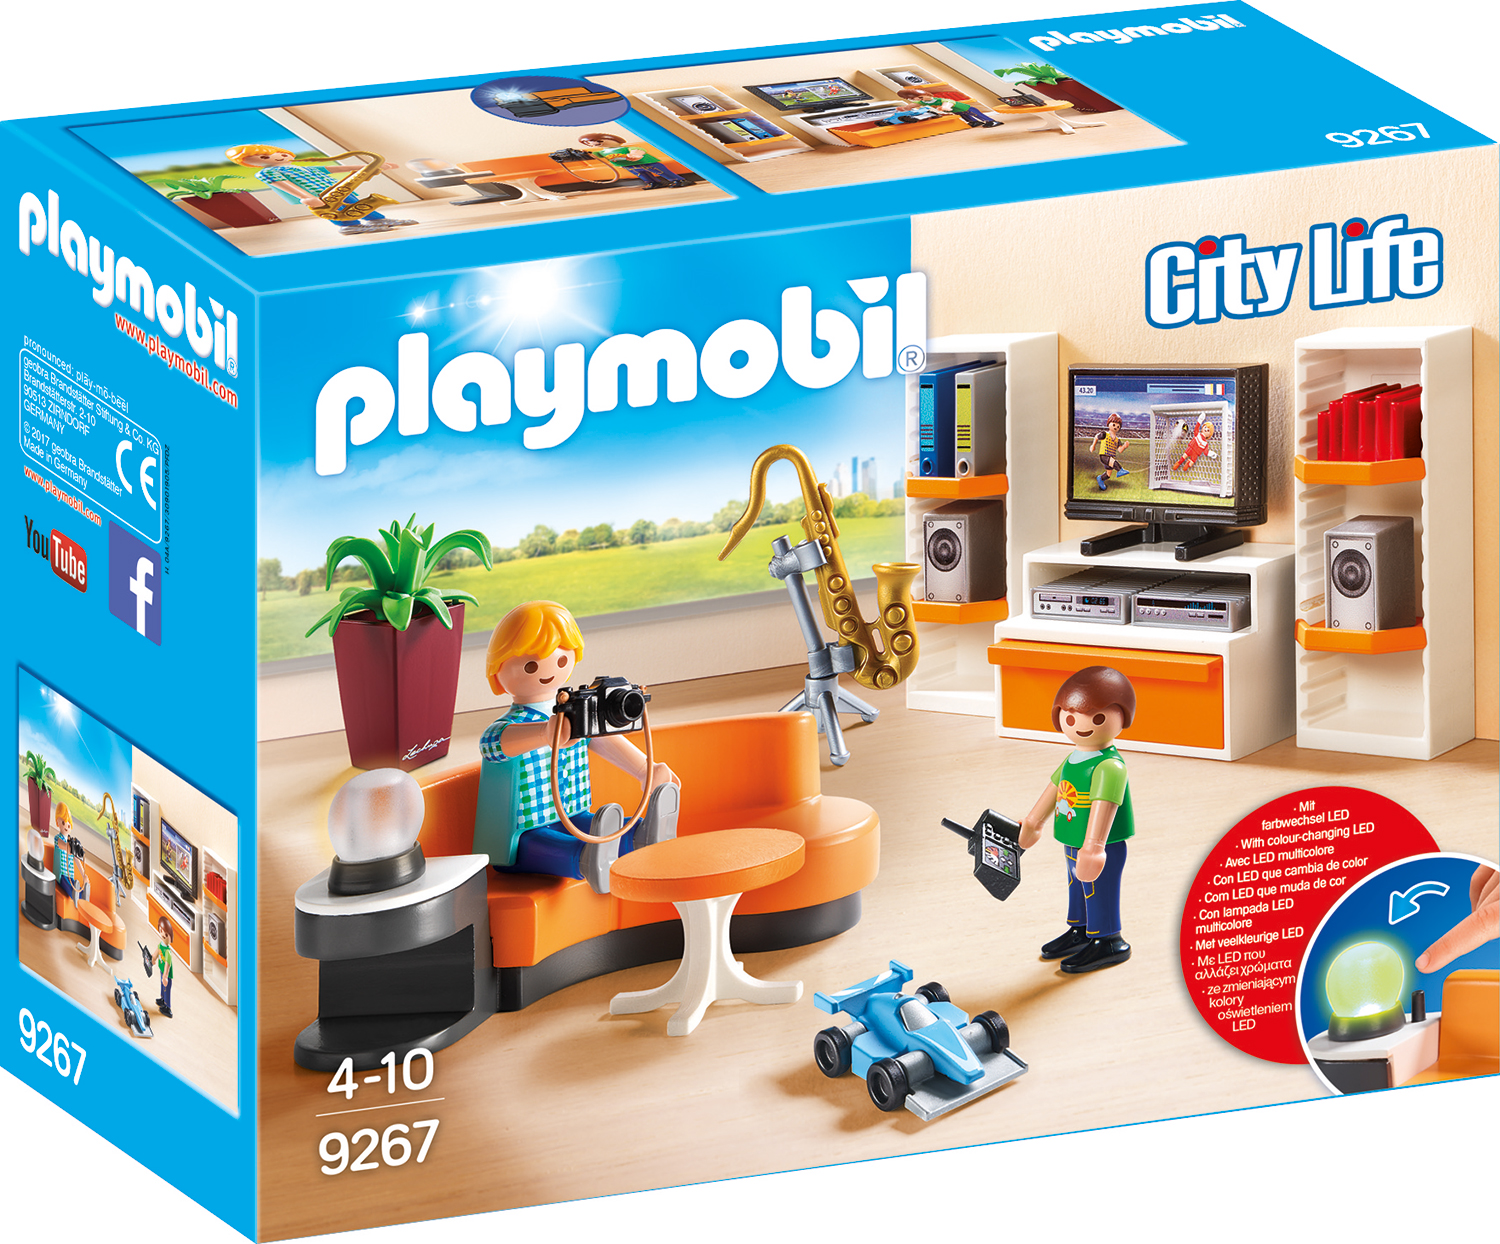 Playmobil City Life - SUFRAGERIE